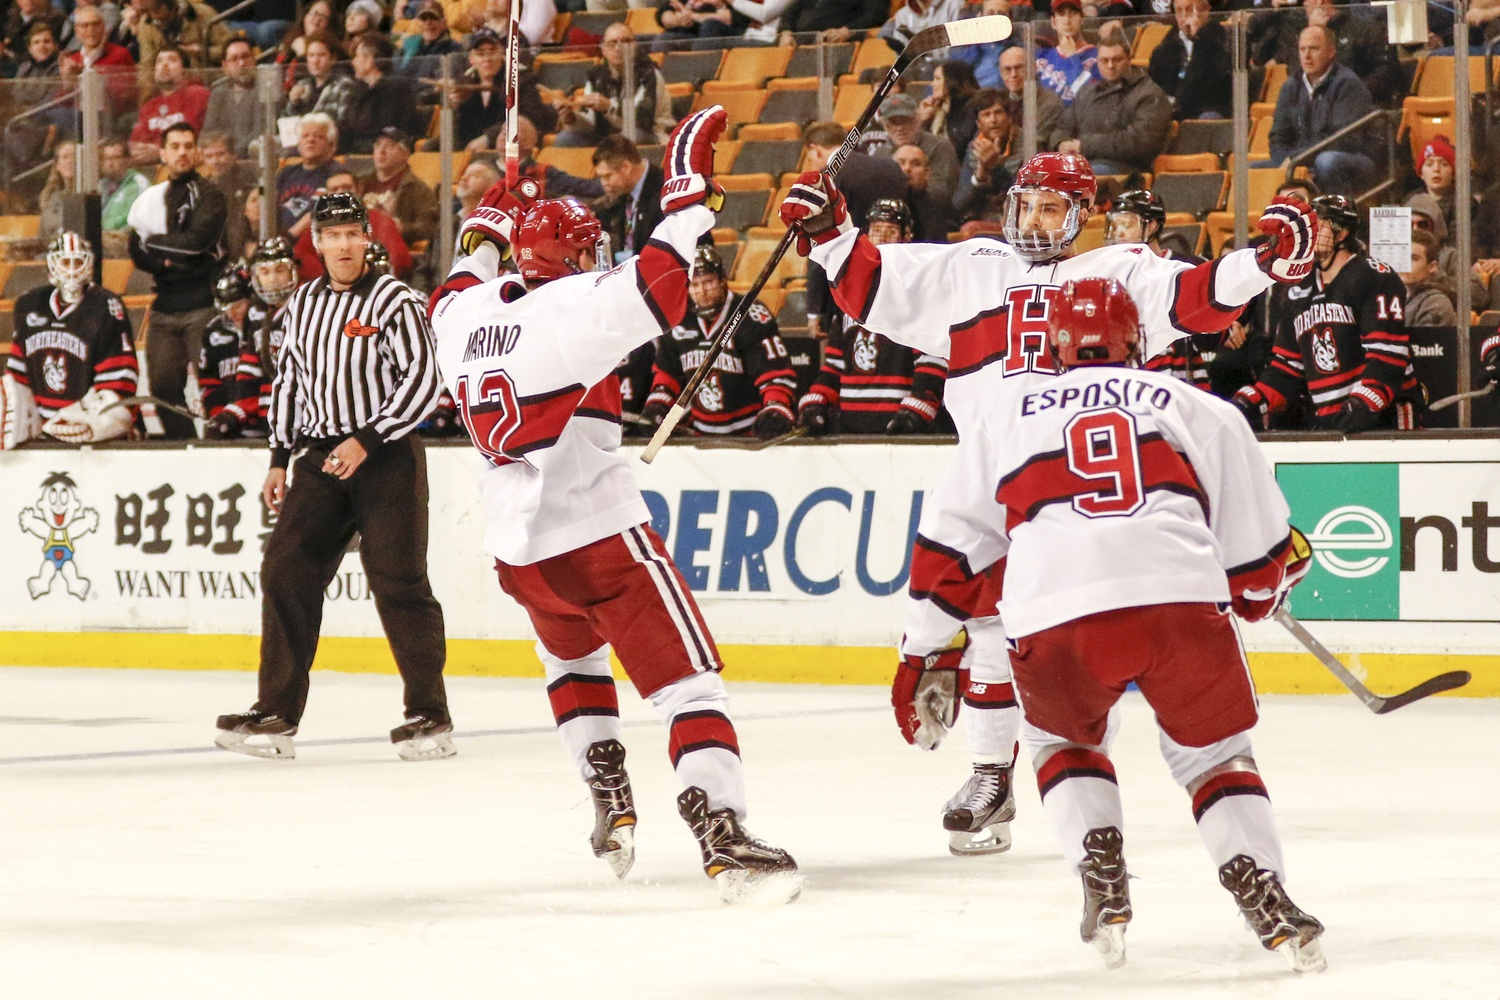 Senior Clay Anderson scored one of the biggest goals of his career in the Beanpot semis to give Harvard a 2-1 lead over Northeastern in the third period.